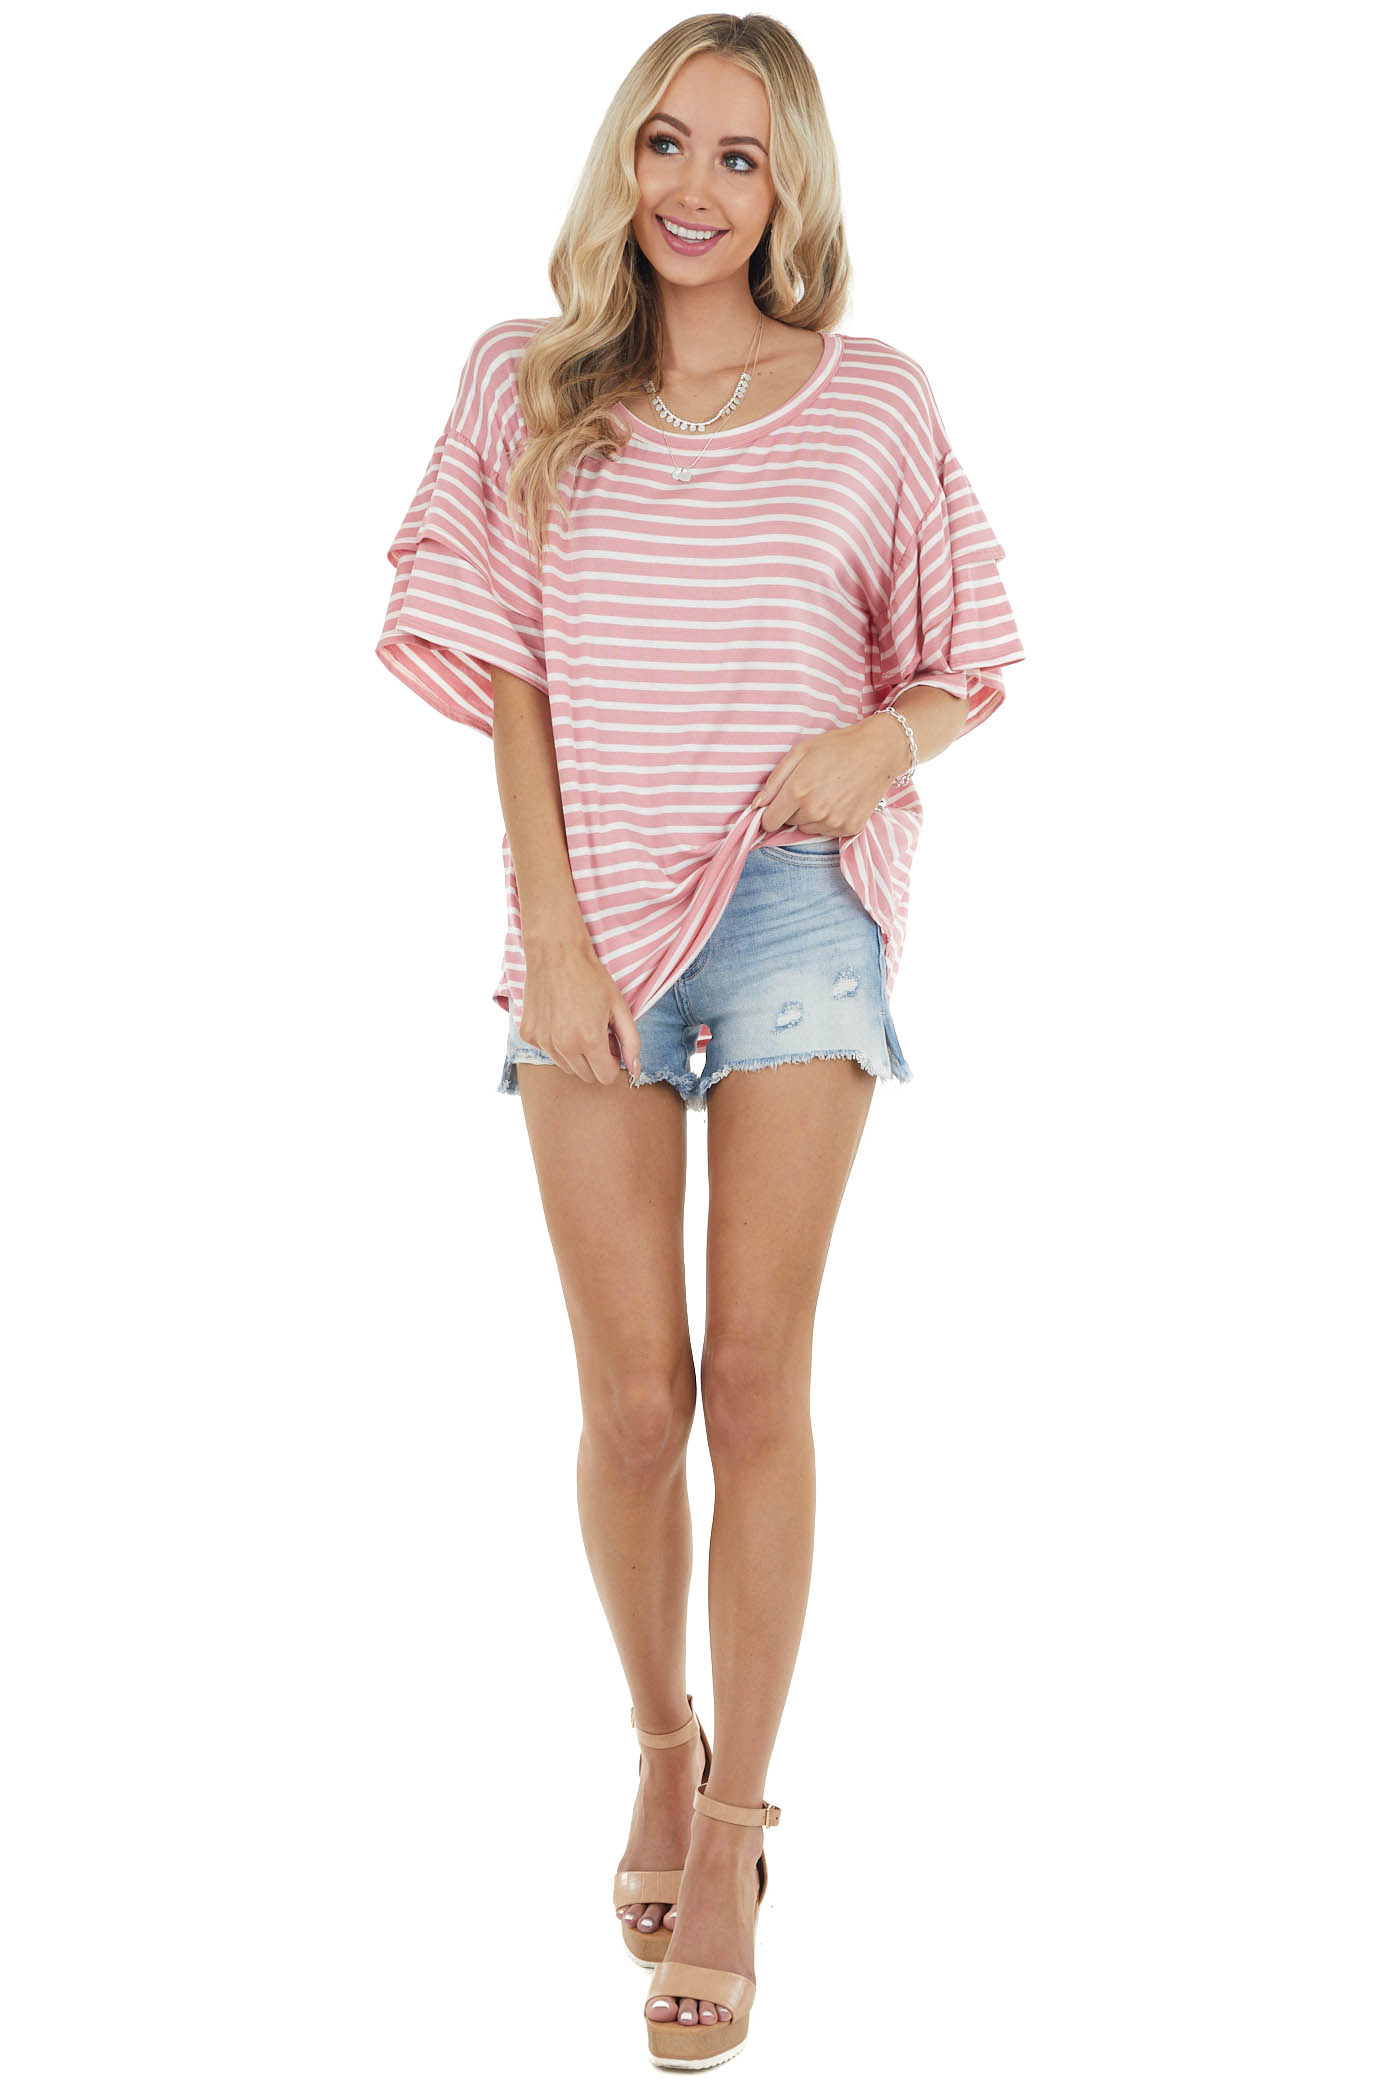 Blush and Ivory Striped Knit Top with Short Ruffle Sleeves